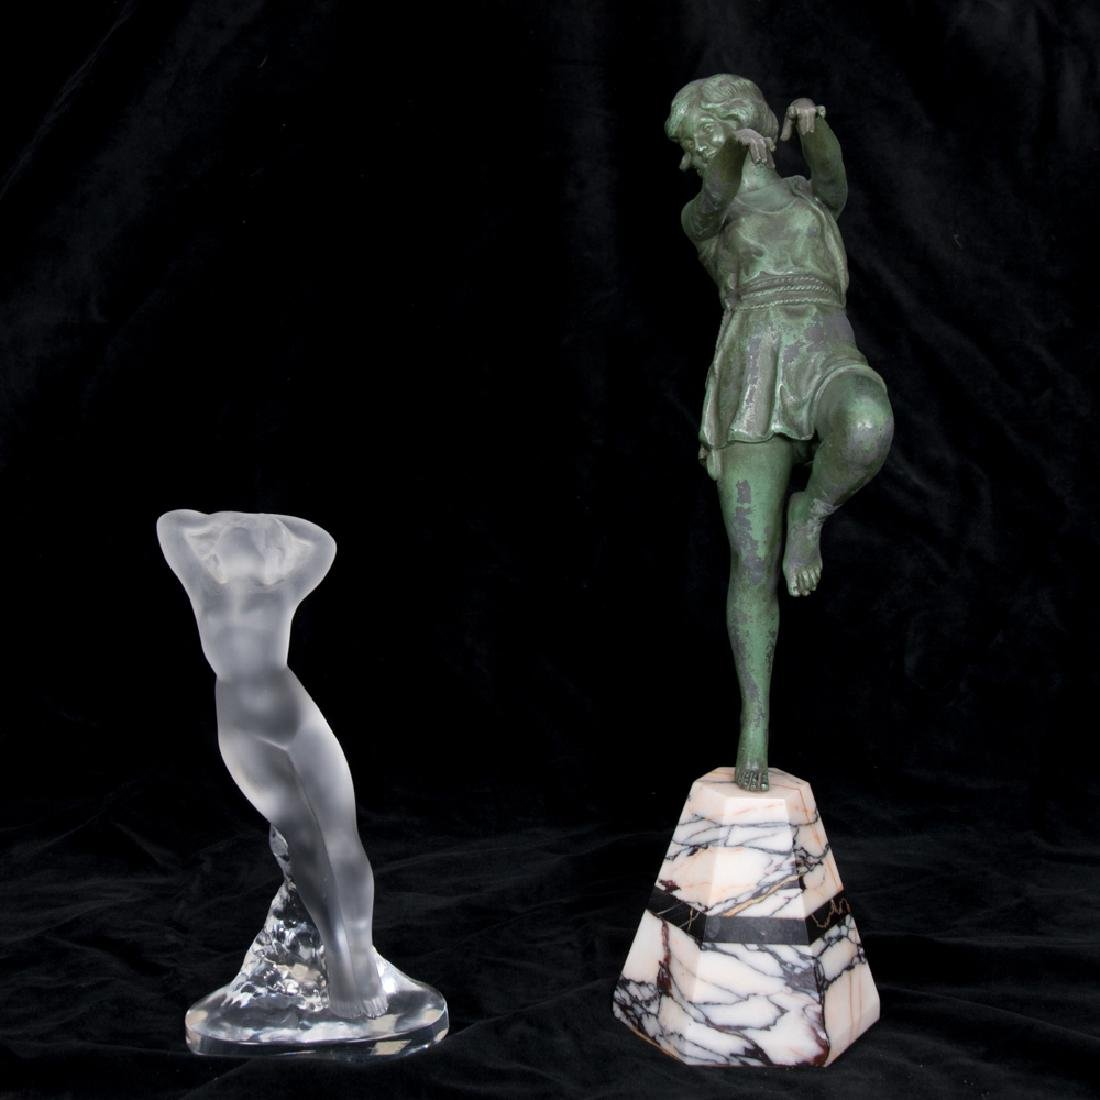 A Deco Patinated Spelter Dancing Figure on a Marble